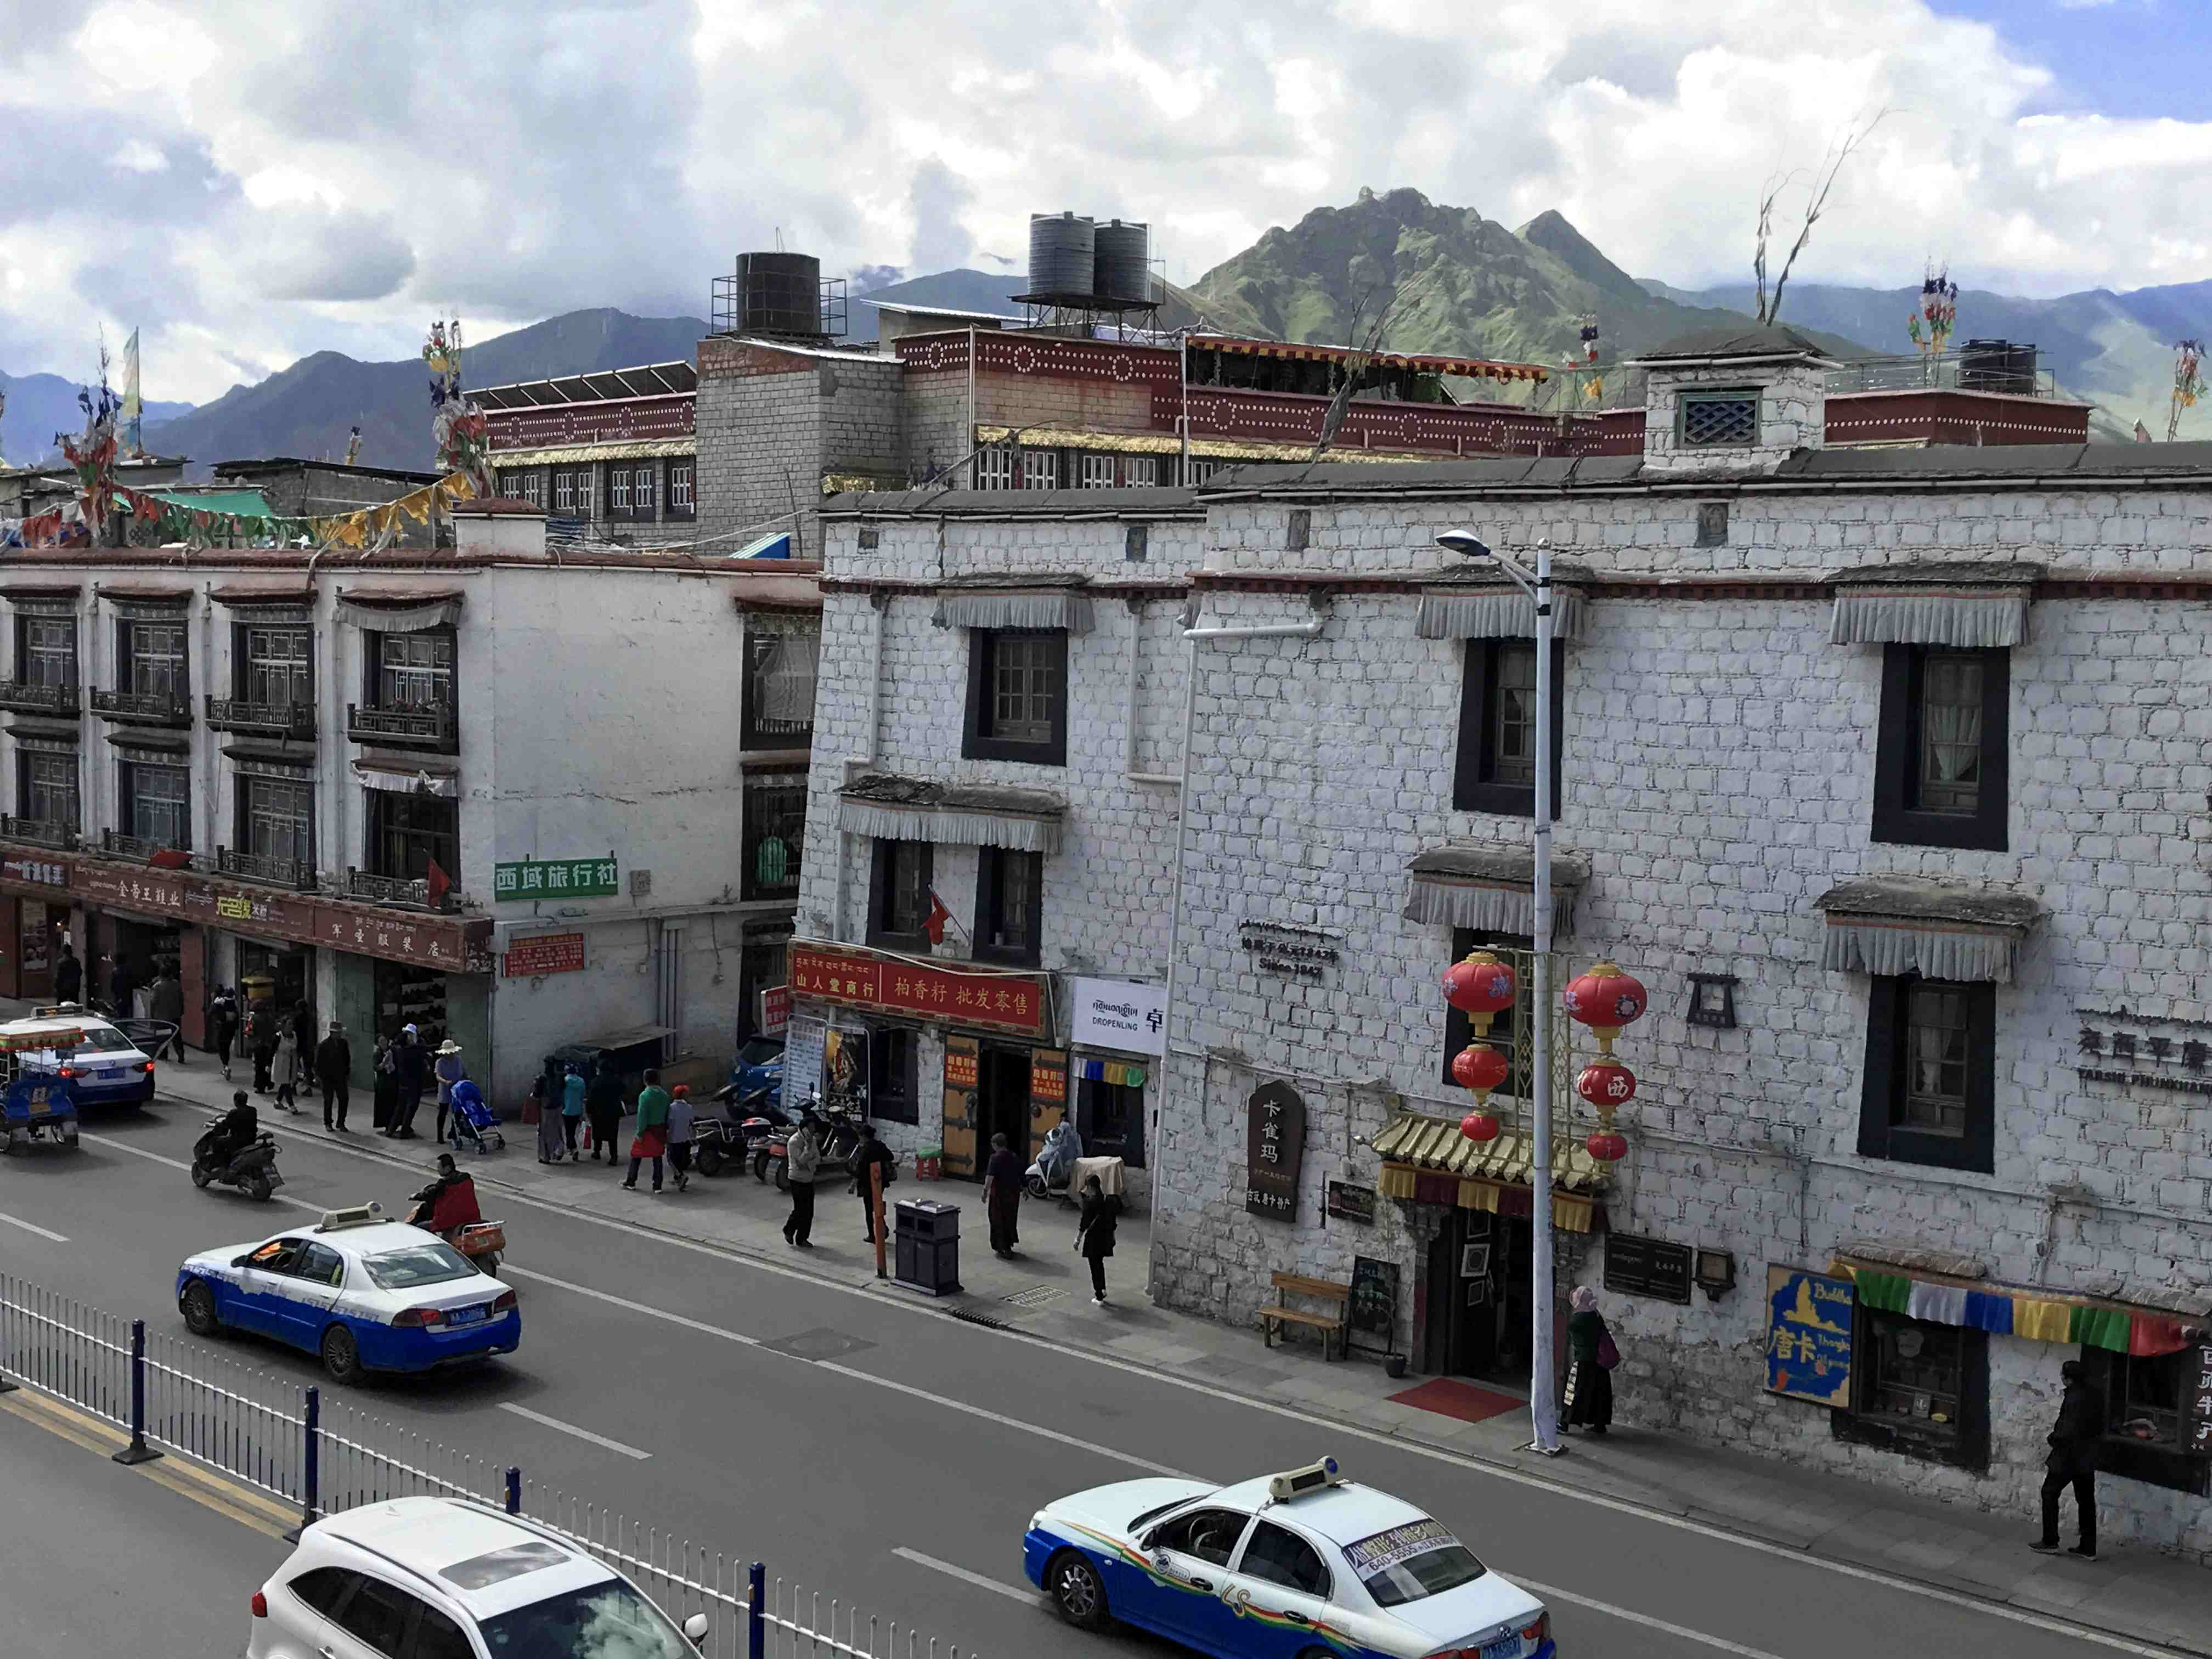 View from the windows of hotel in Lhasa, Tibet